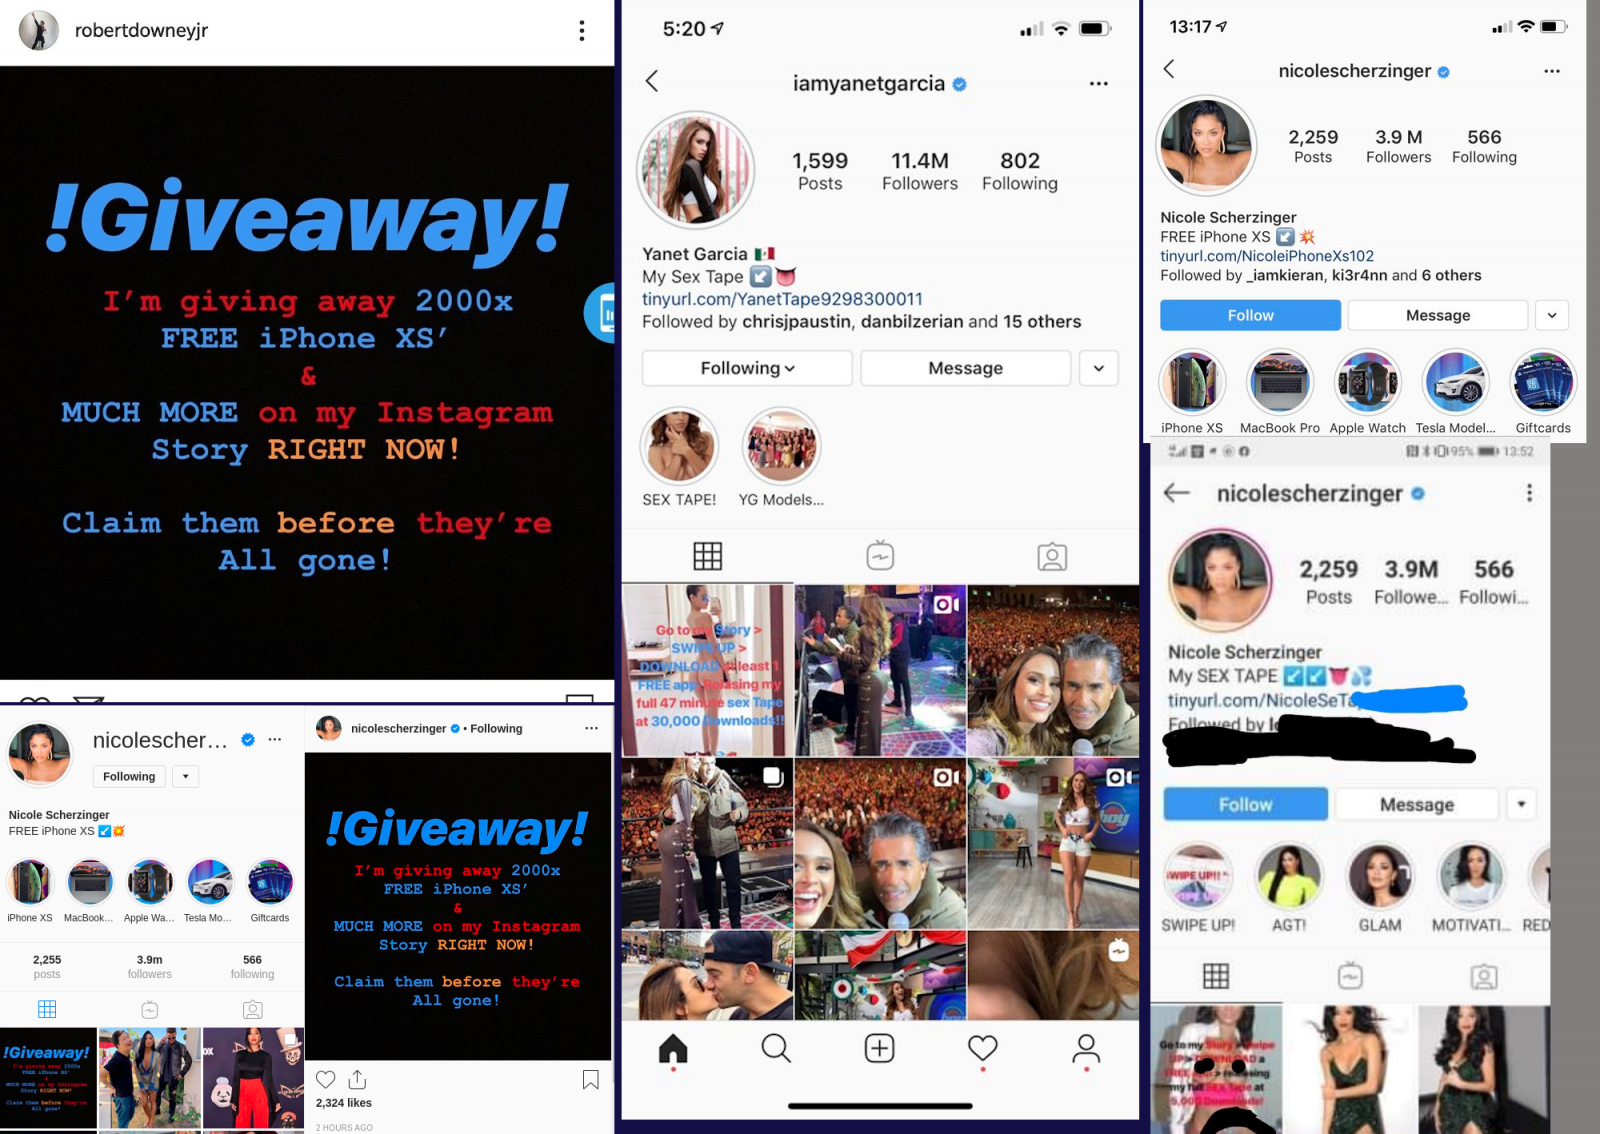 Crooks hacked other celebrity Instagram accounts to push scams